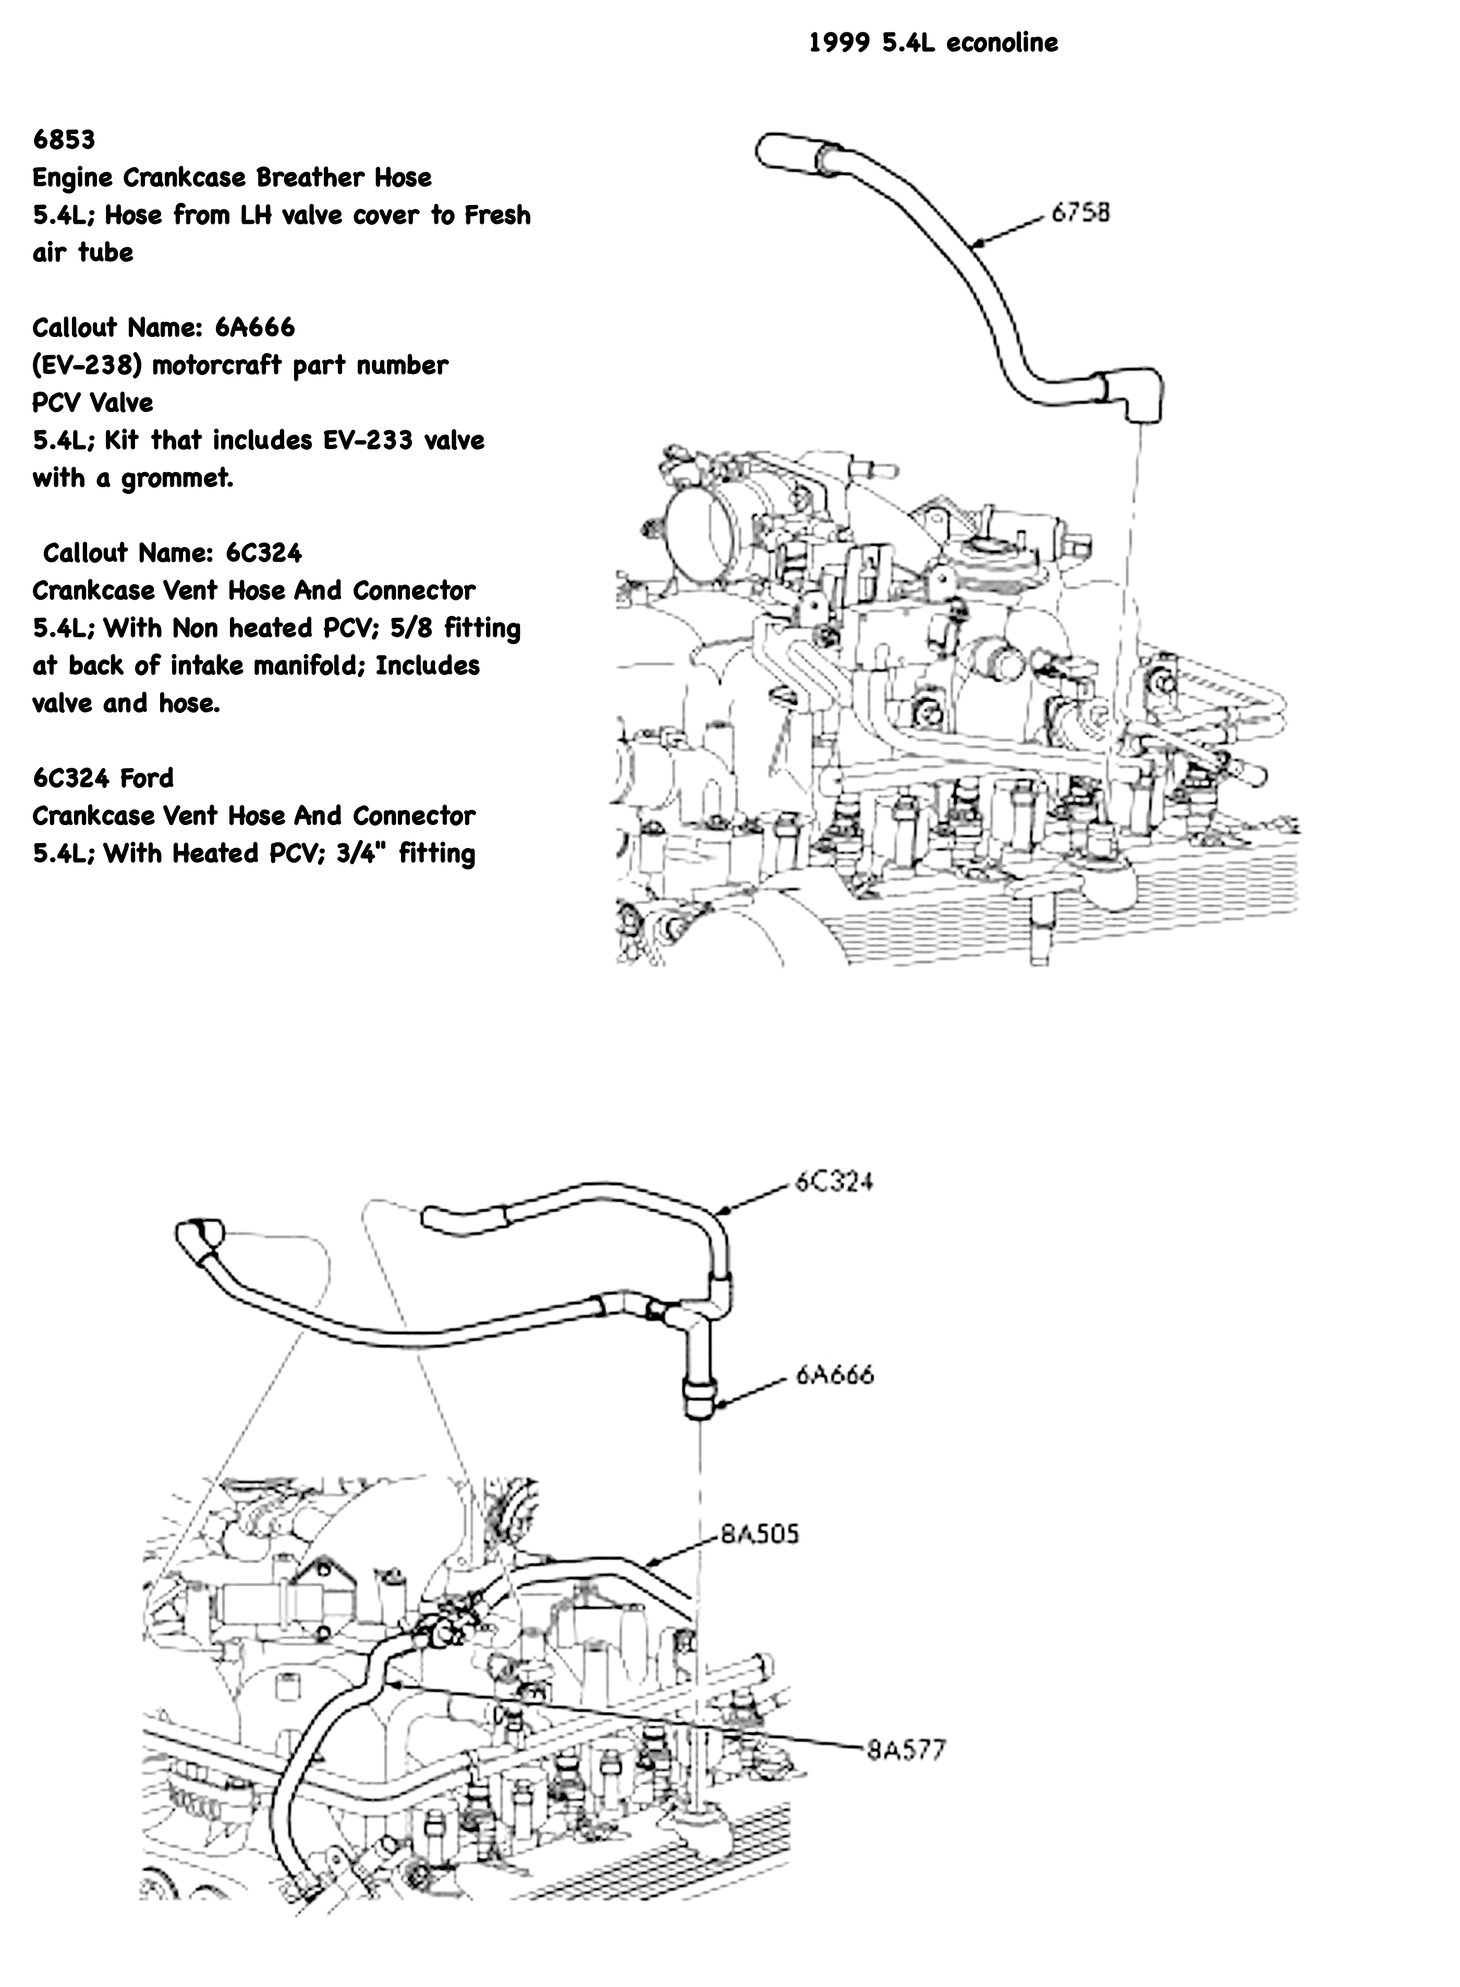 3 4 L Engine Diagram Wiring Library F150 1999 5 4l V8 Heated Pcv Hose Assembly W Trusted